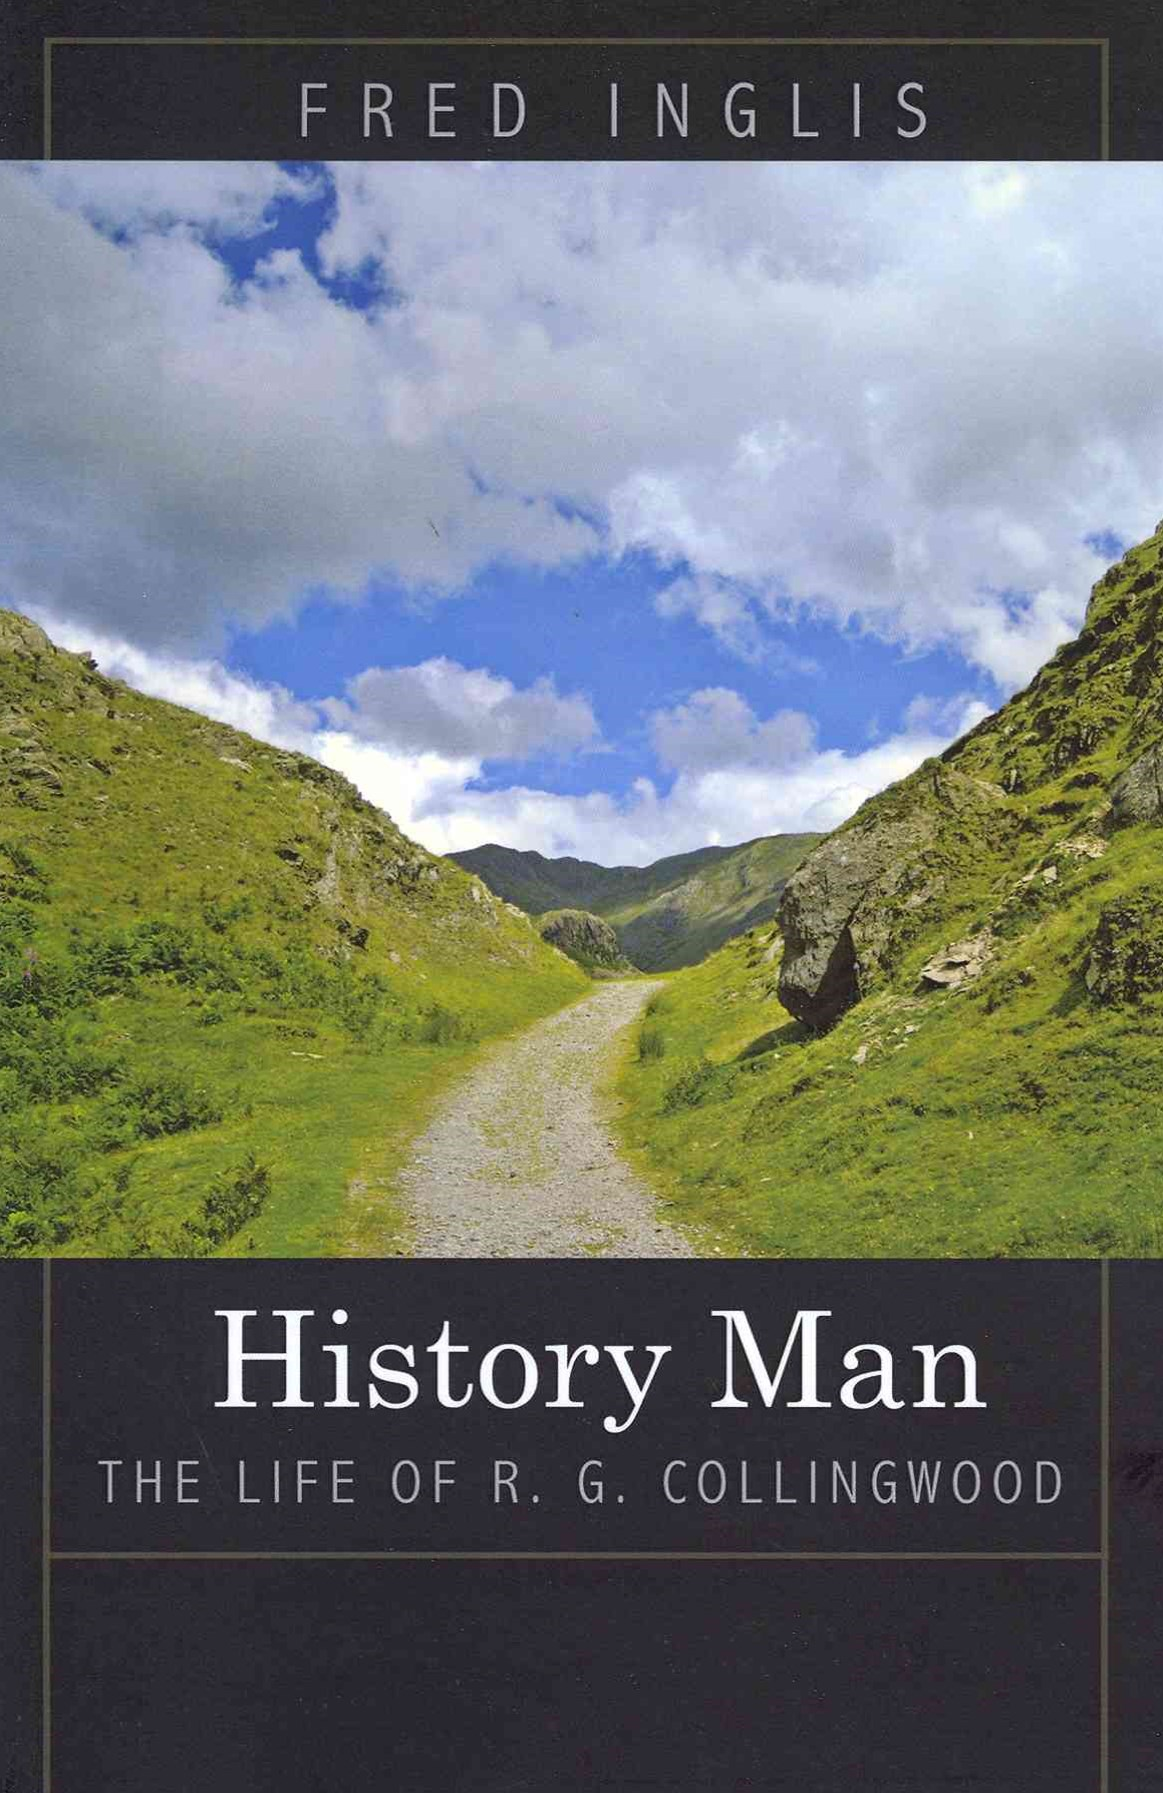 History Man - The Life of R. G. Collingwood